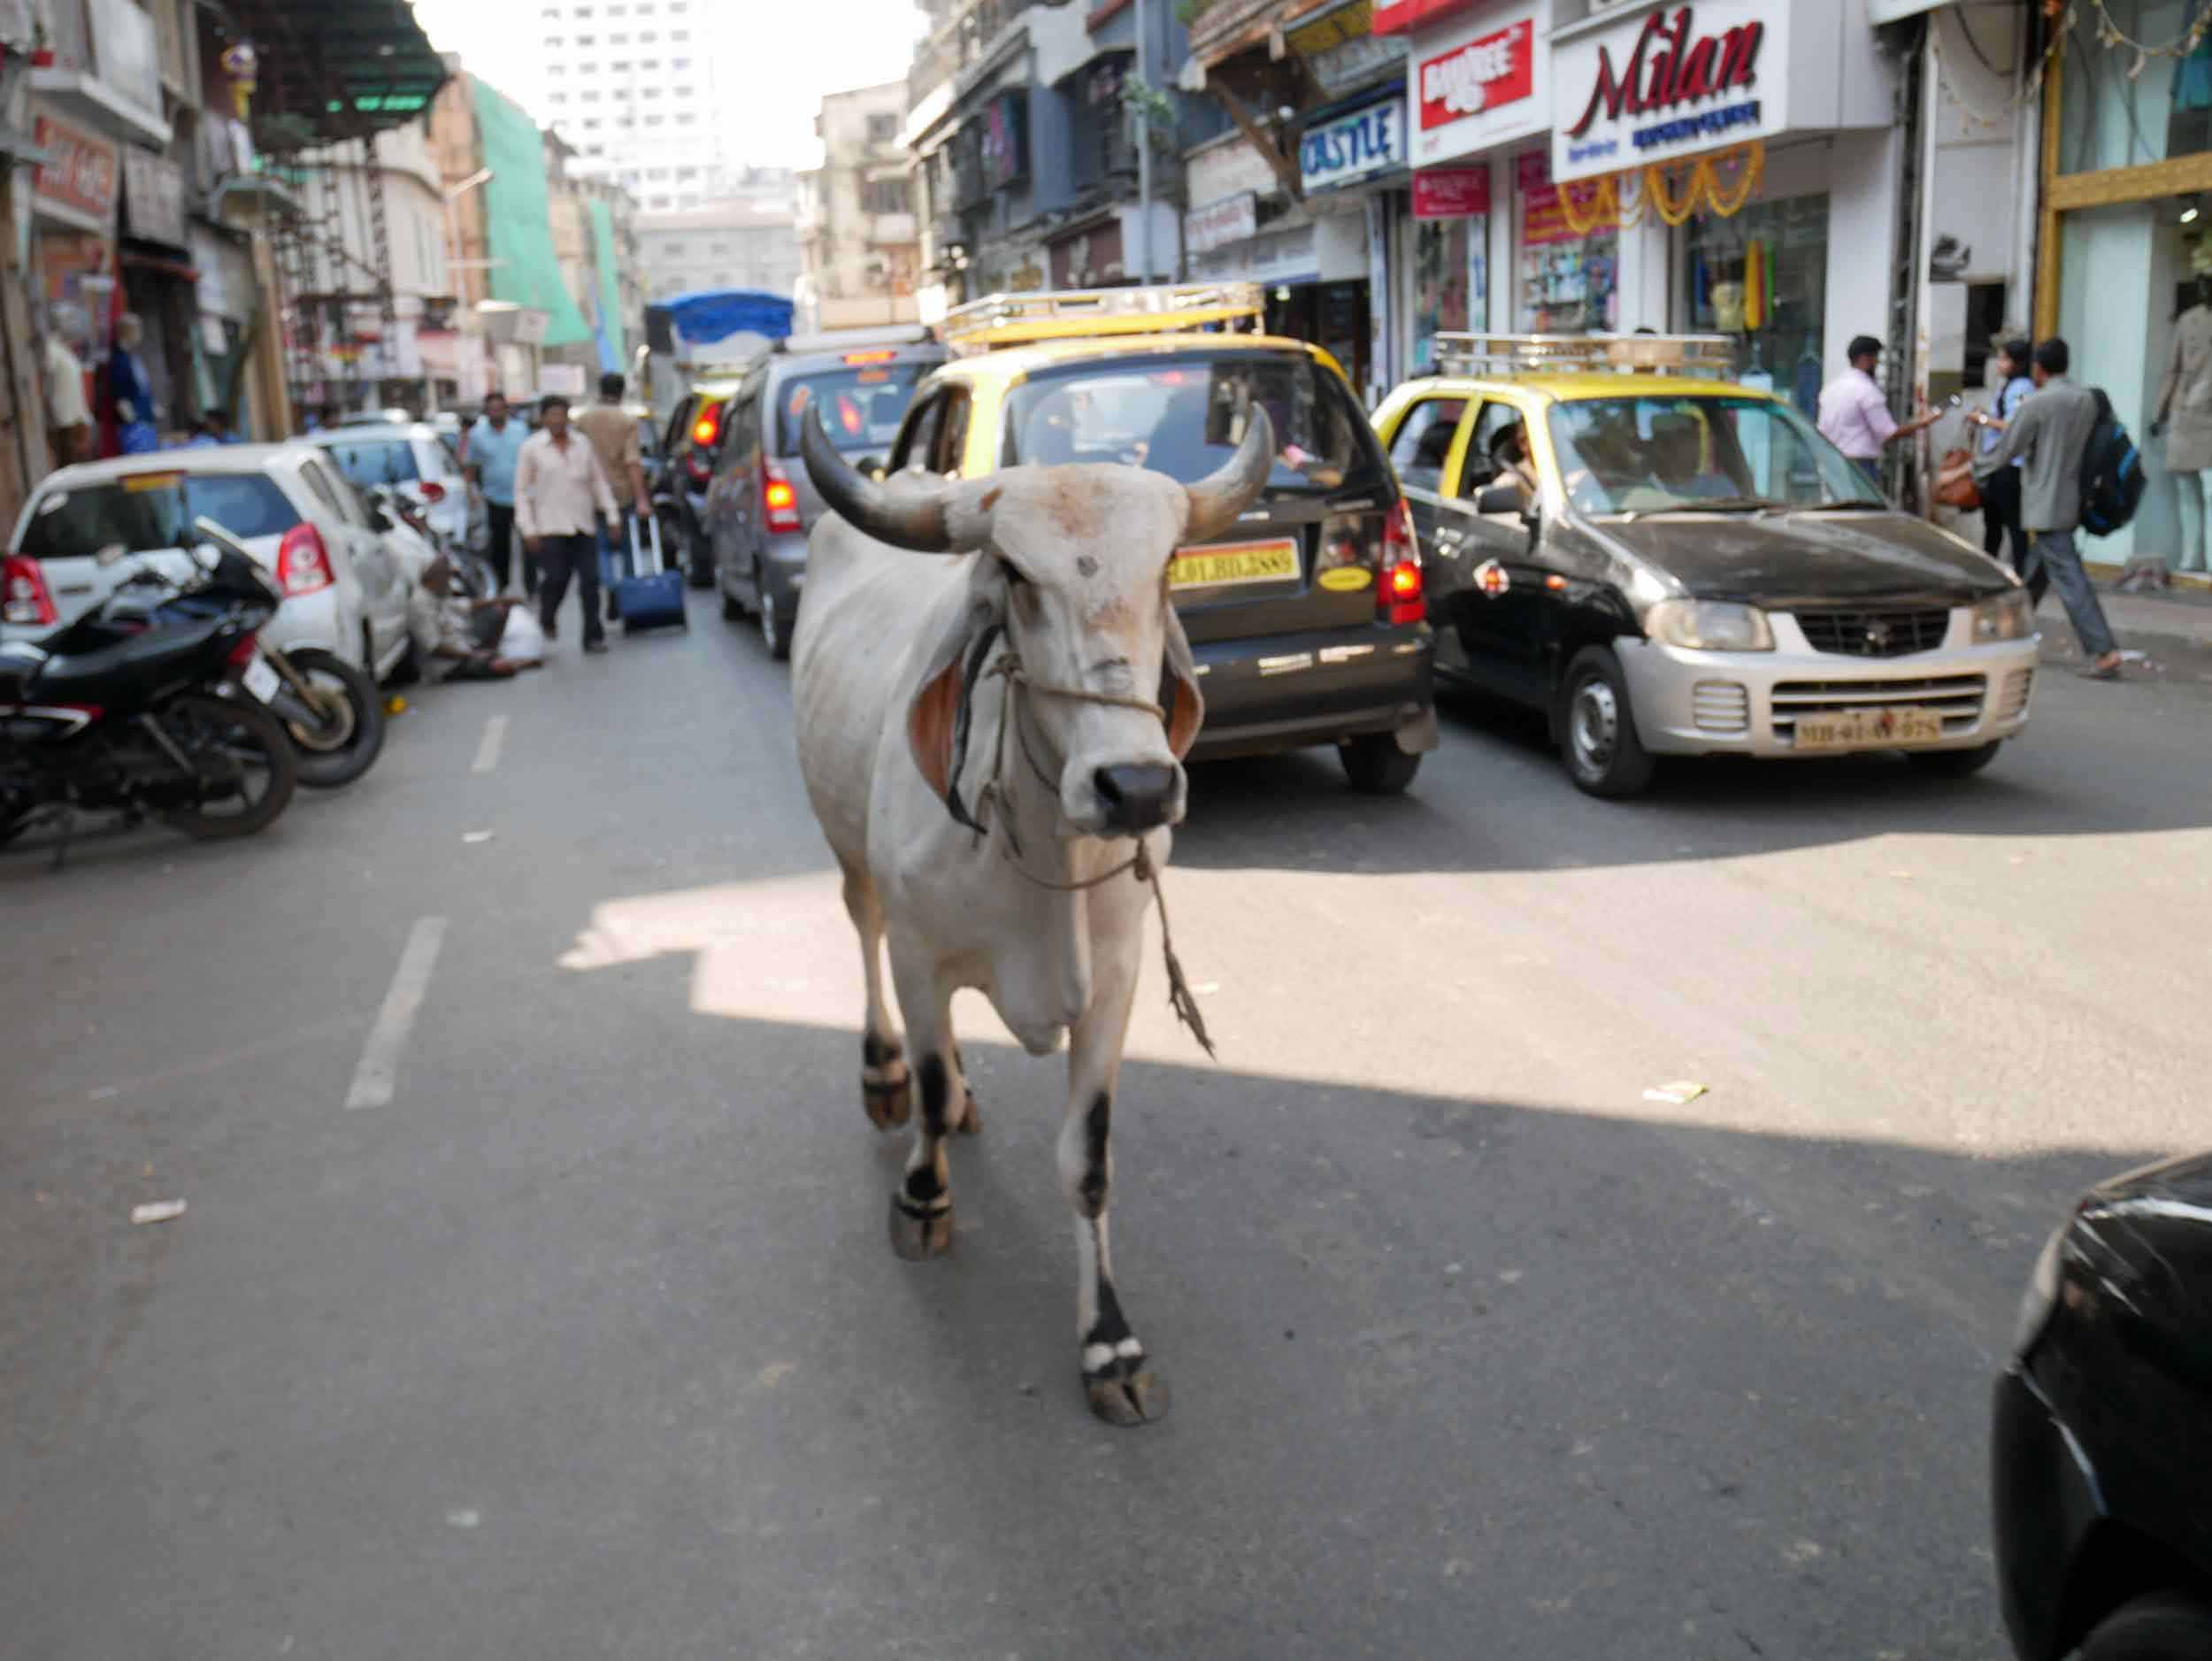 One of many famed cows who live amongst the crowds and traffic of Mumbai.